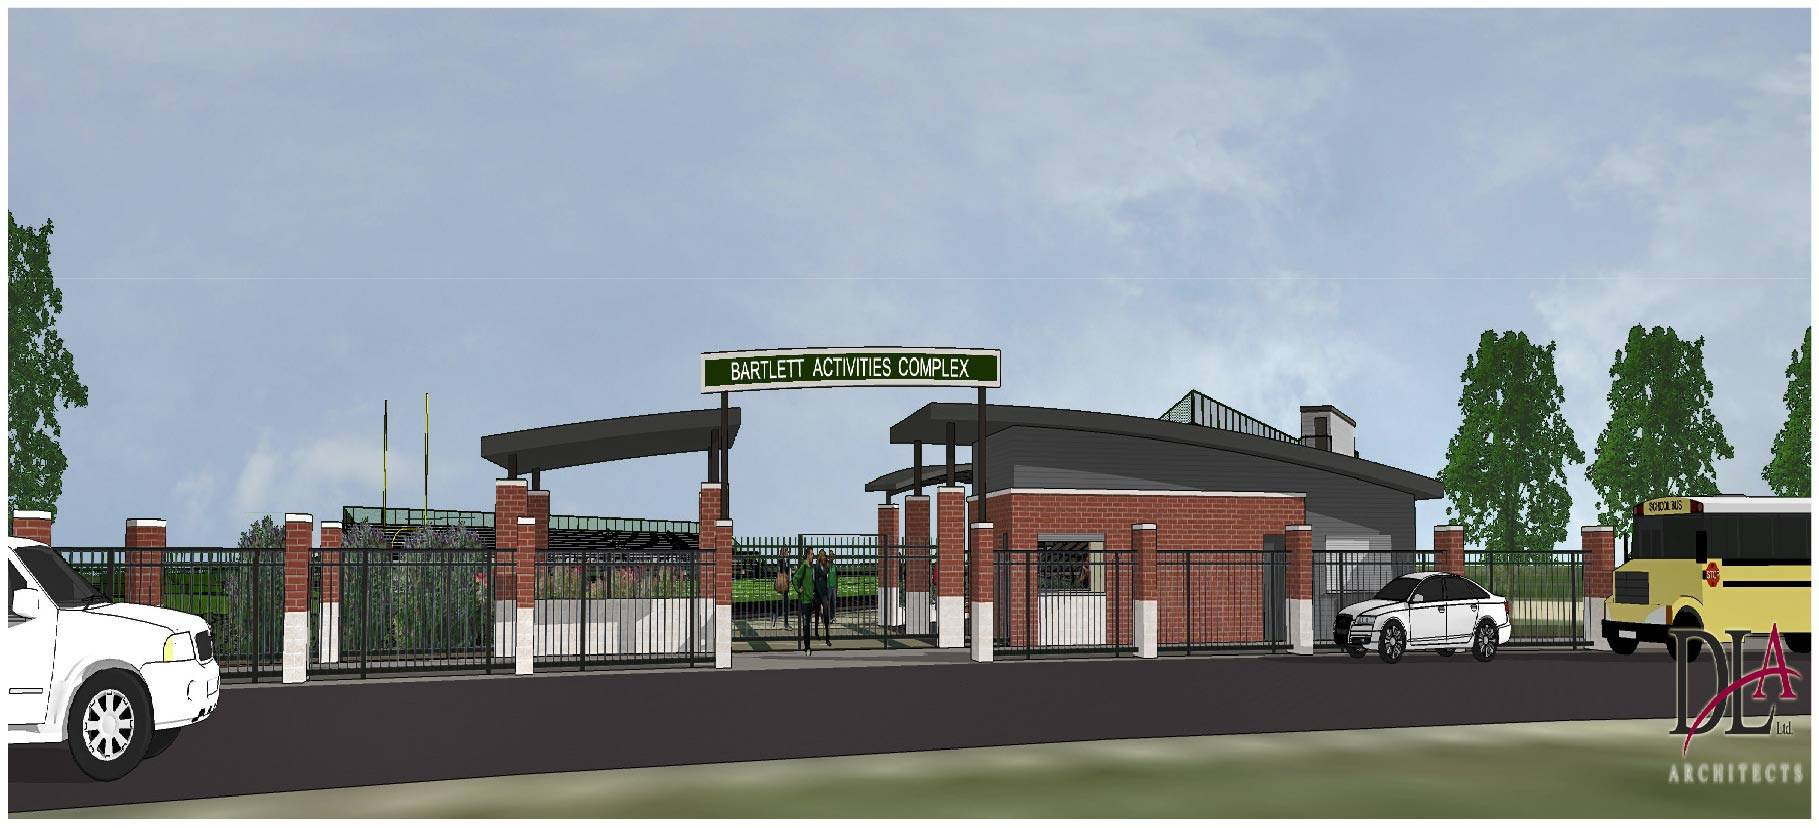 This is a sketch of the proposed Bartlett High School Activities Complex.